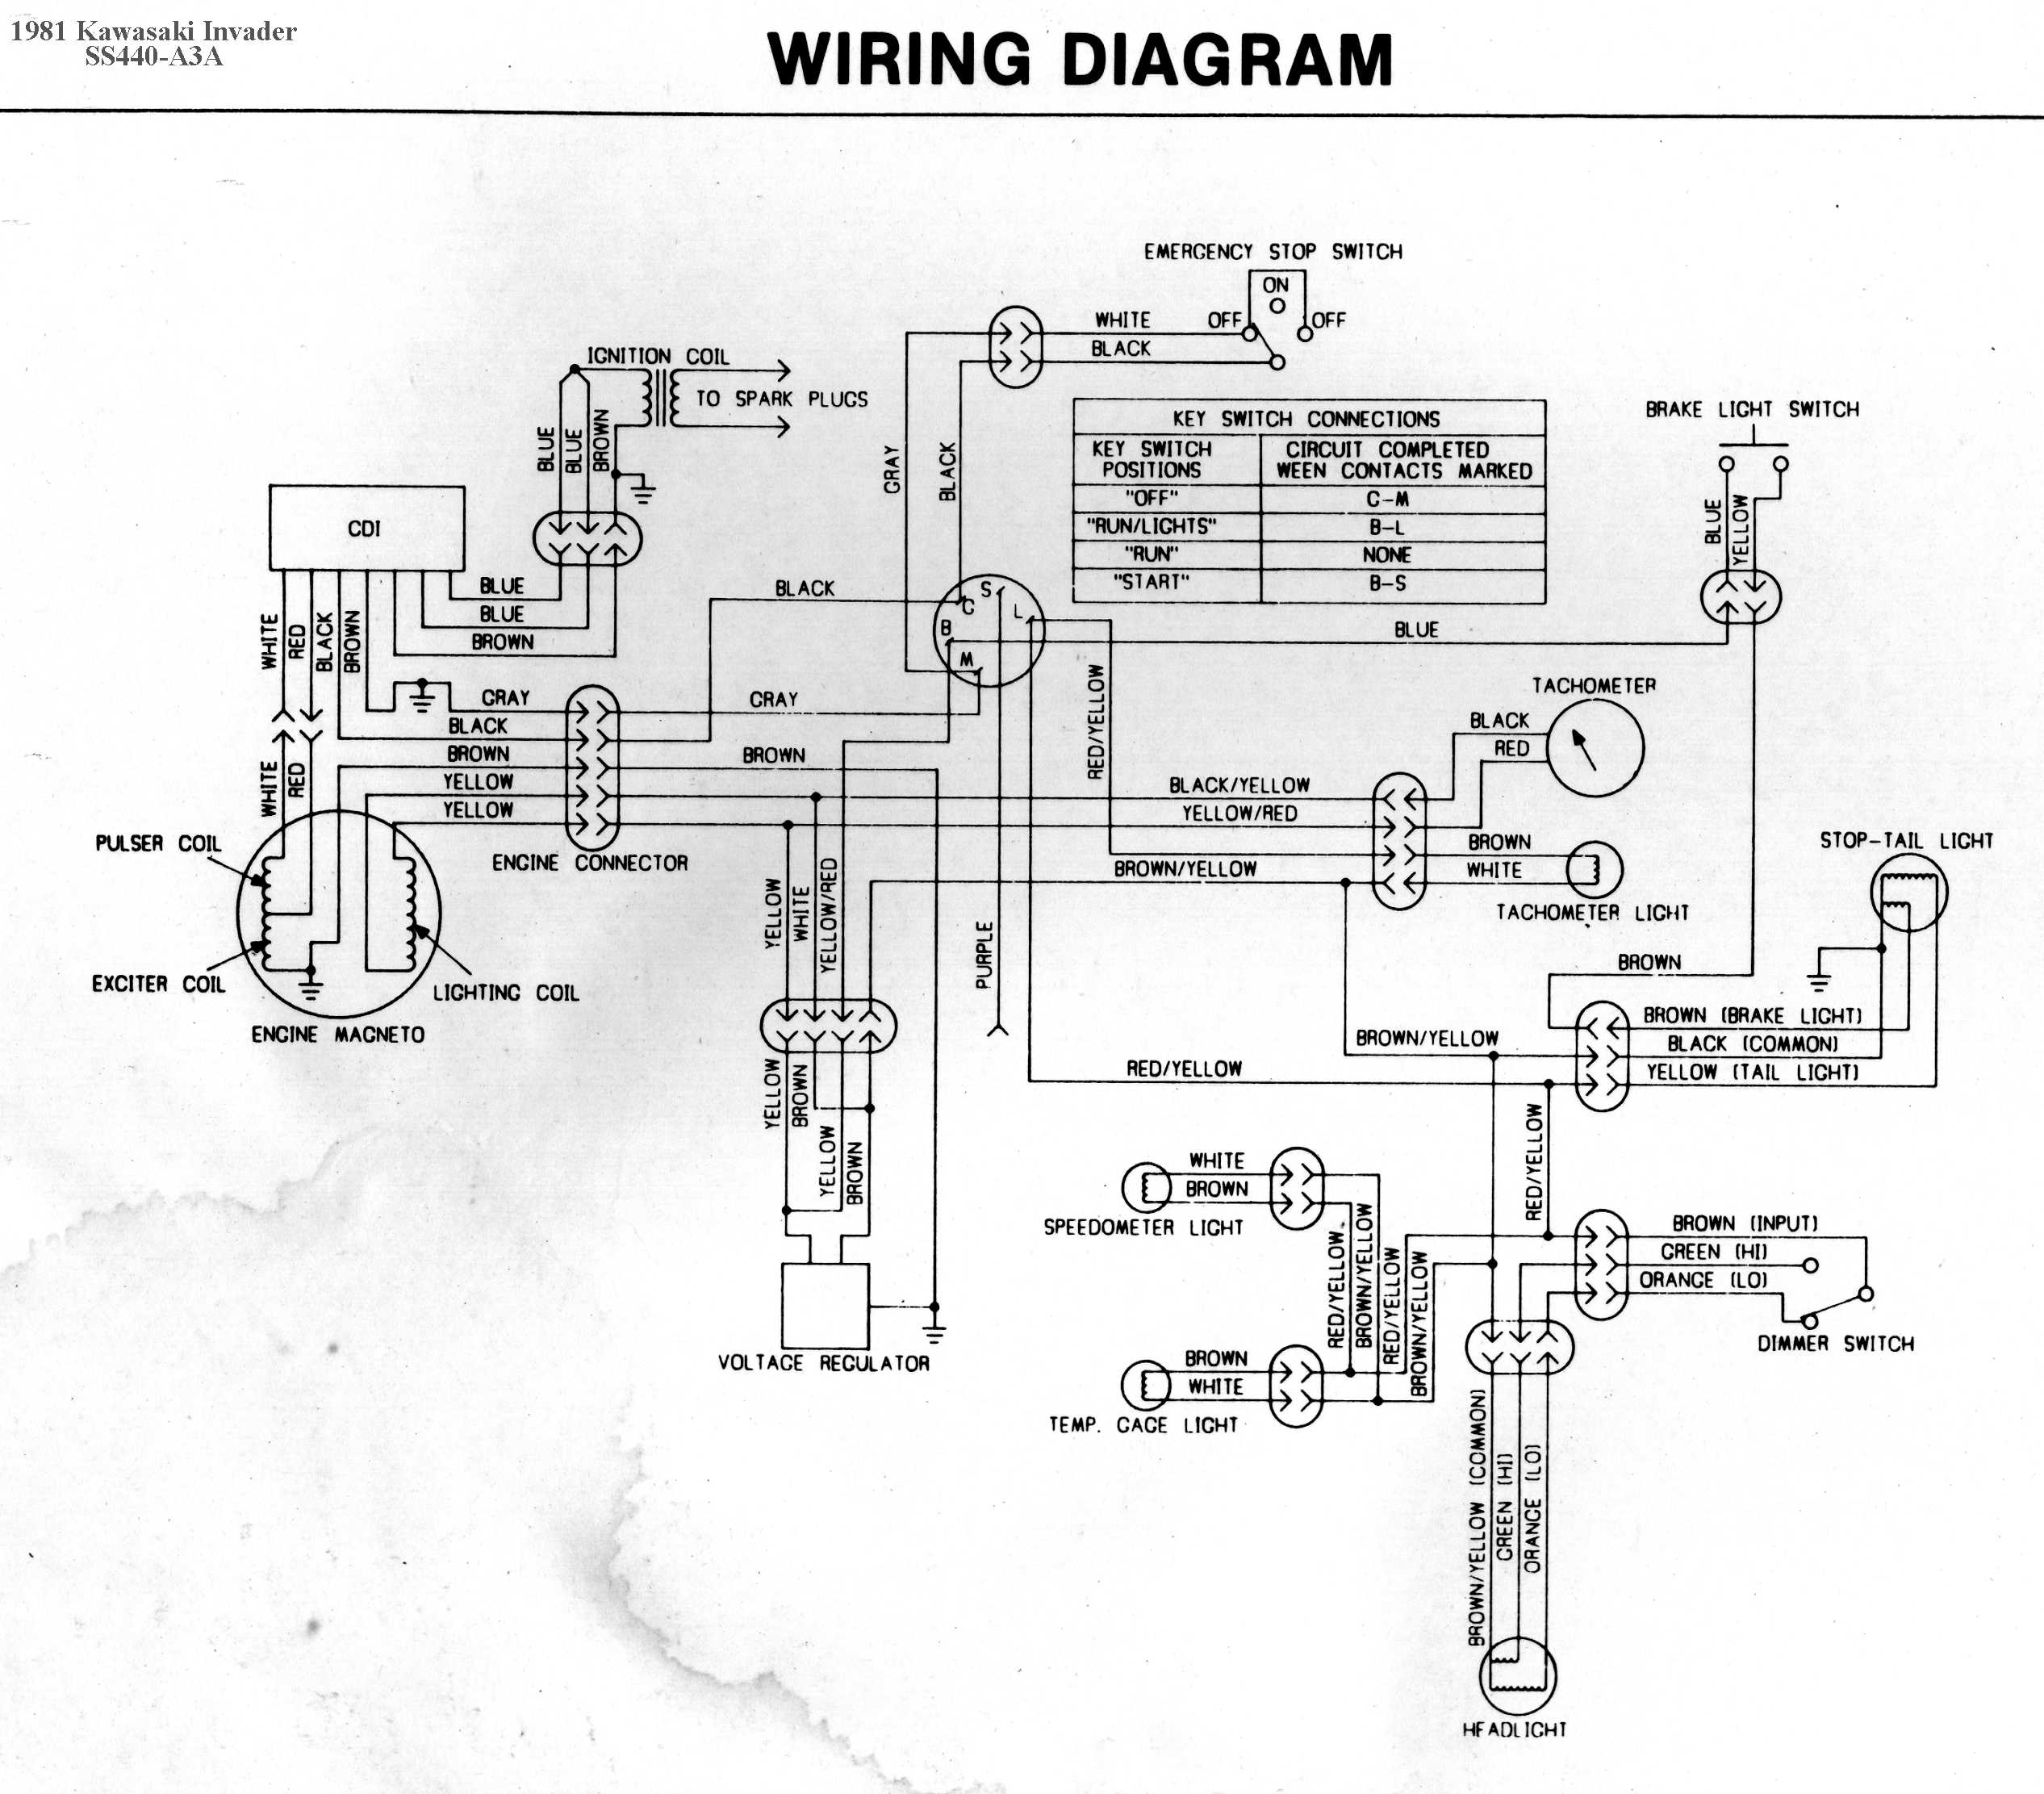 [DIAGRAM_0HG]  02DA Wiring Diagram For Arctic Cat Jag 3000 | Wiring Resources | Arctic Cat Jet Ski Wiring Diagrams |  | Wiring Resources